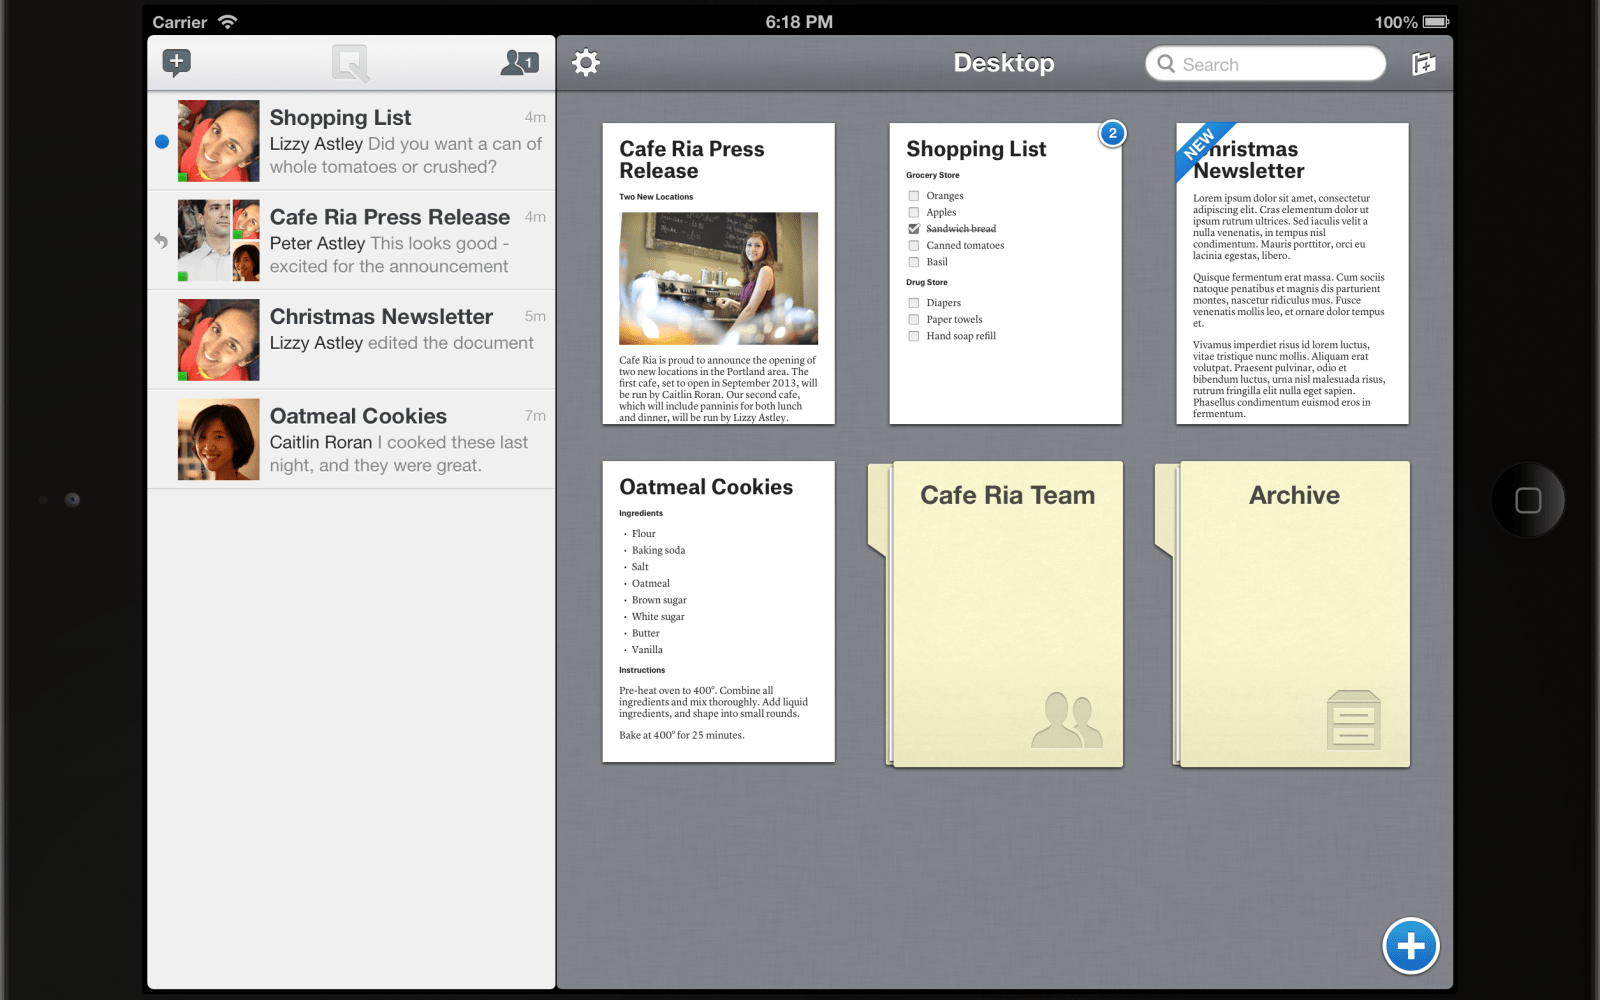 Former Google Maps founder and Facebook CTO launches mobile word processor called Quip